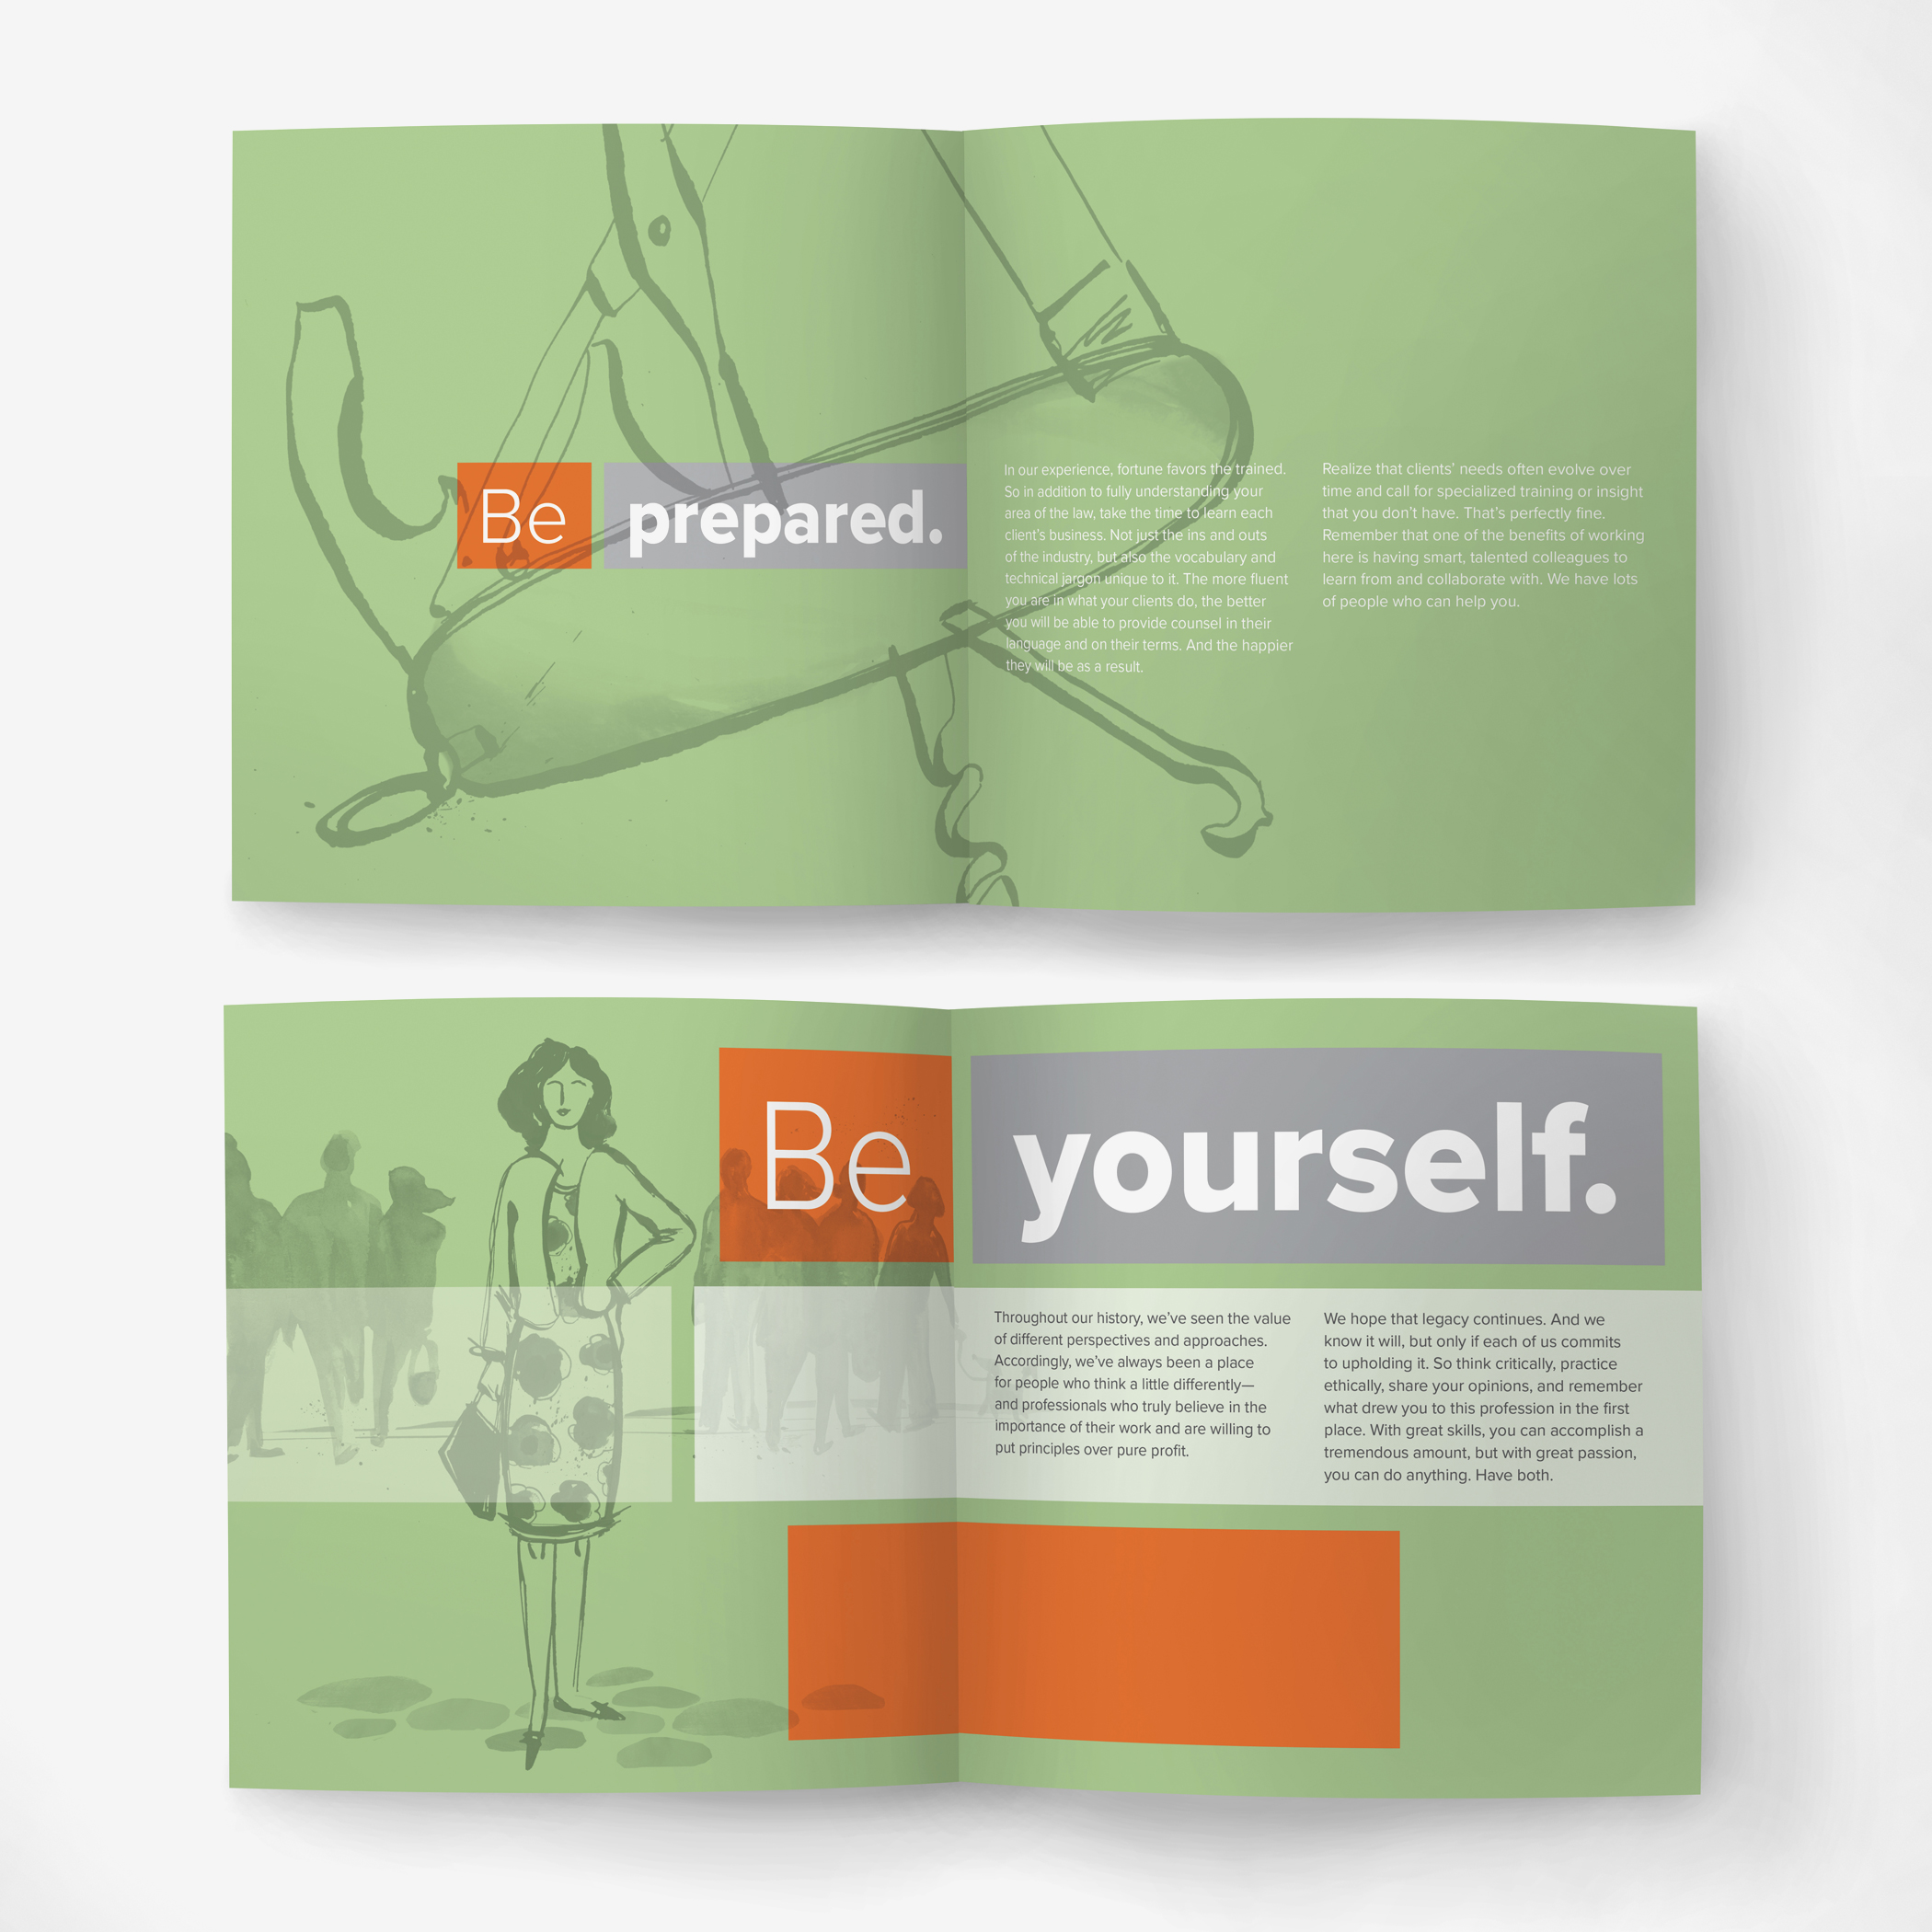 """wo sets of inside pages from the Bernstein Shur brand spirit booklet with the headlines """"Be prepared"""" and """"Be yourself."""""""